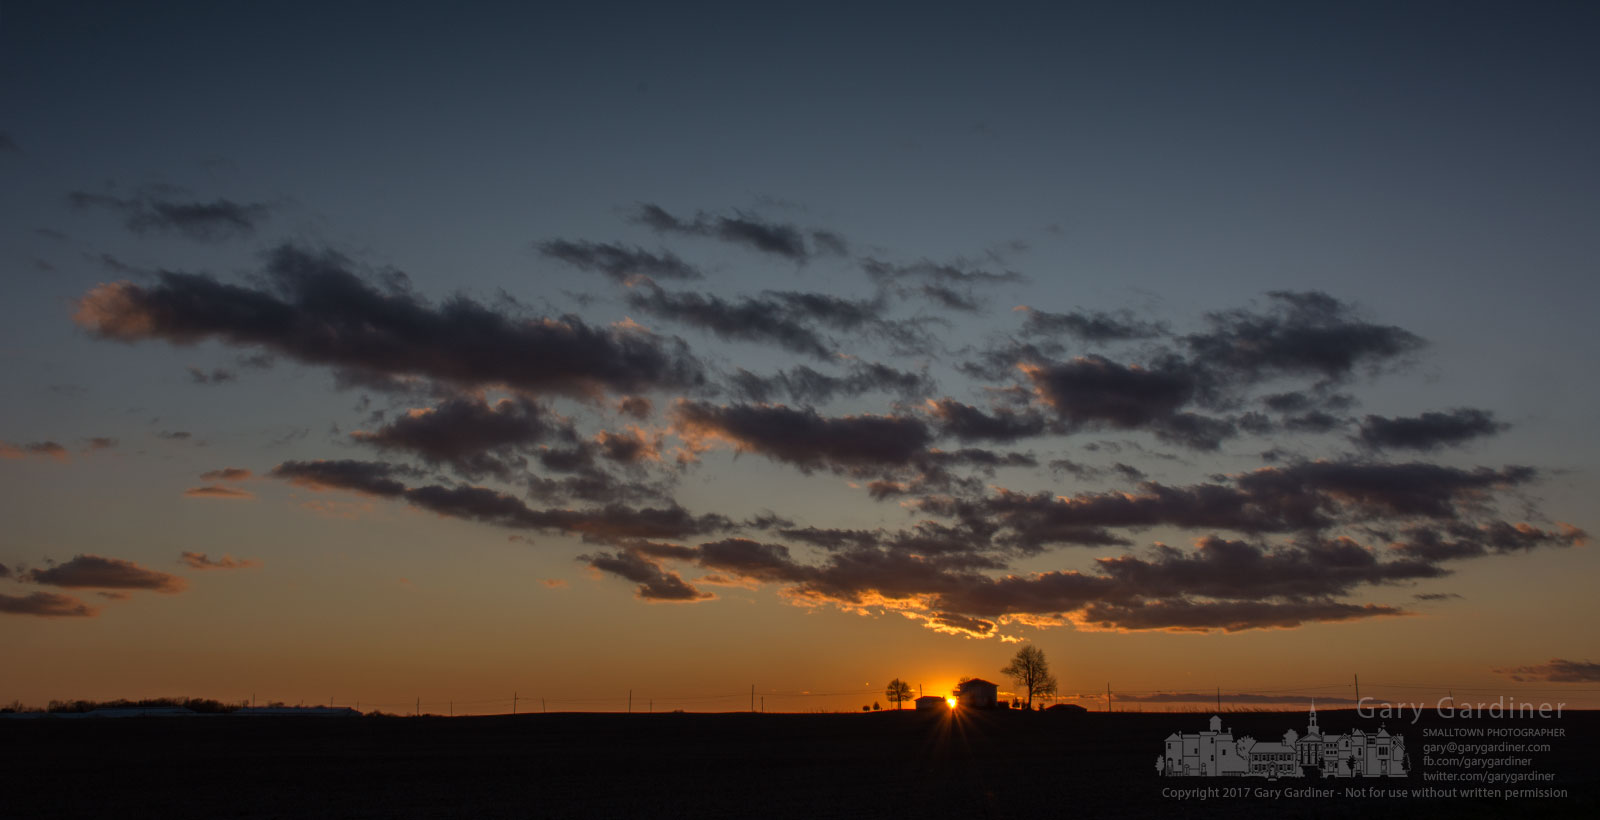 The sun sets behind a farmhouse on a ridgeline along a country road neat Hartford, Ohio. My Final Photo for Nov. 25, 2017.